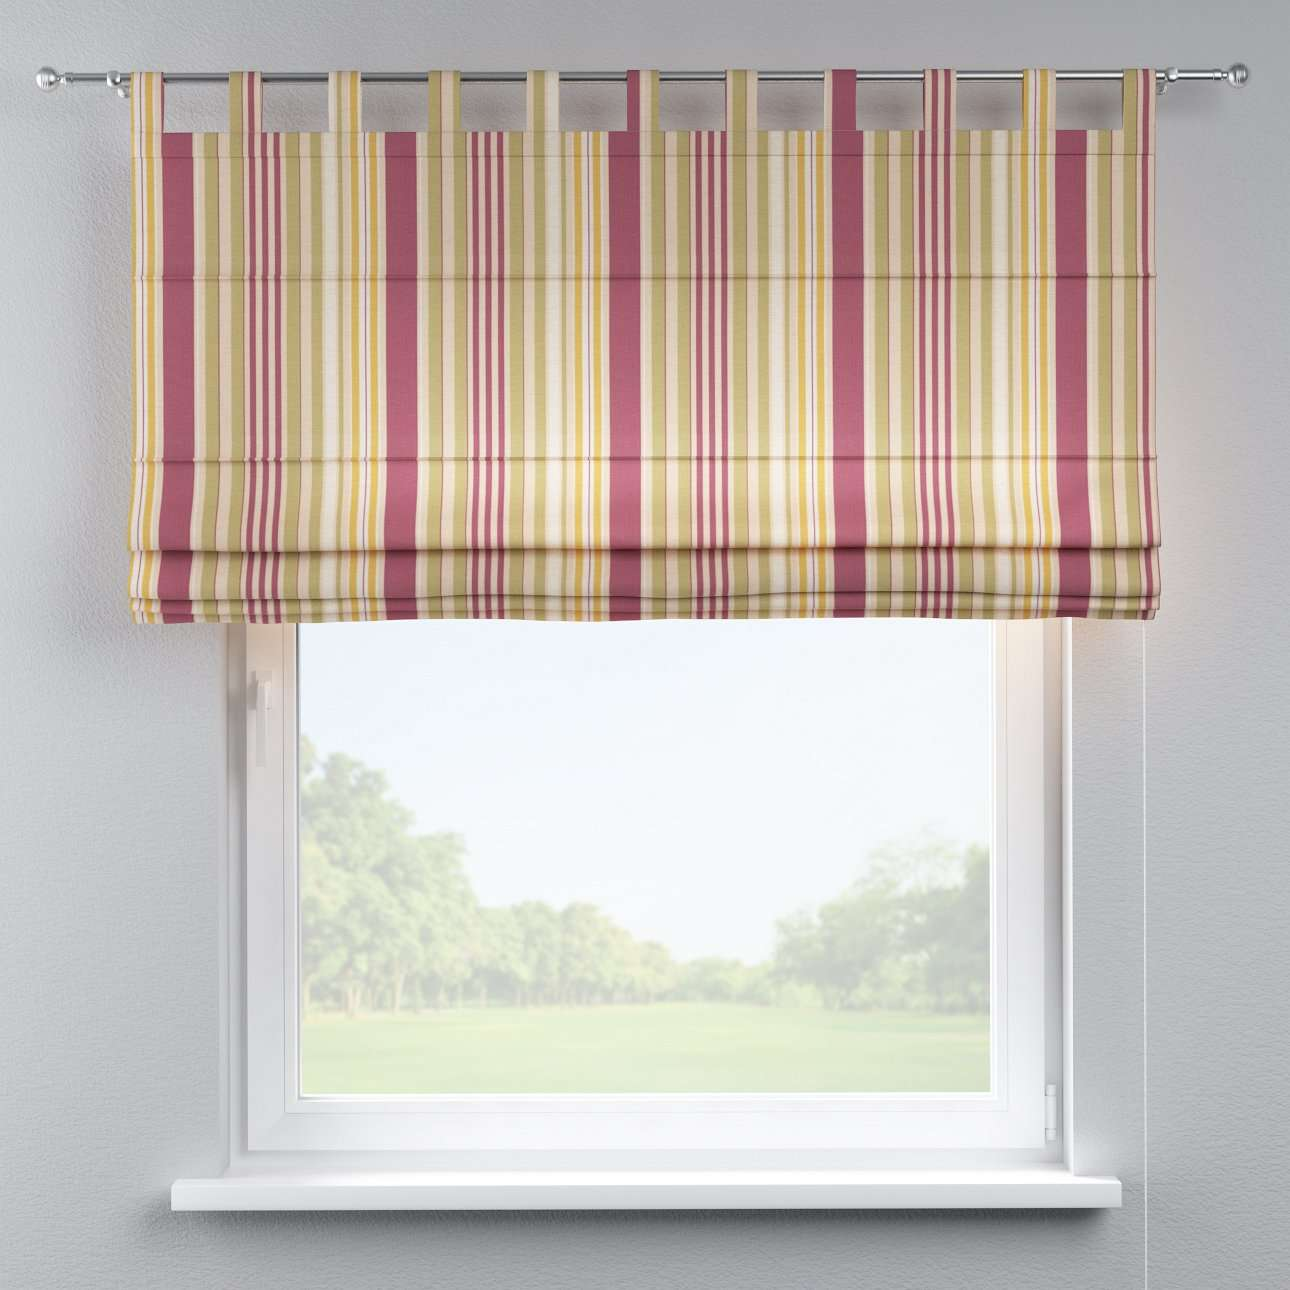 Verona tab top roman blind in collection Londres, fabric: 122-09